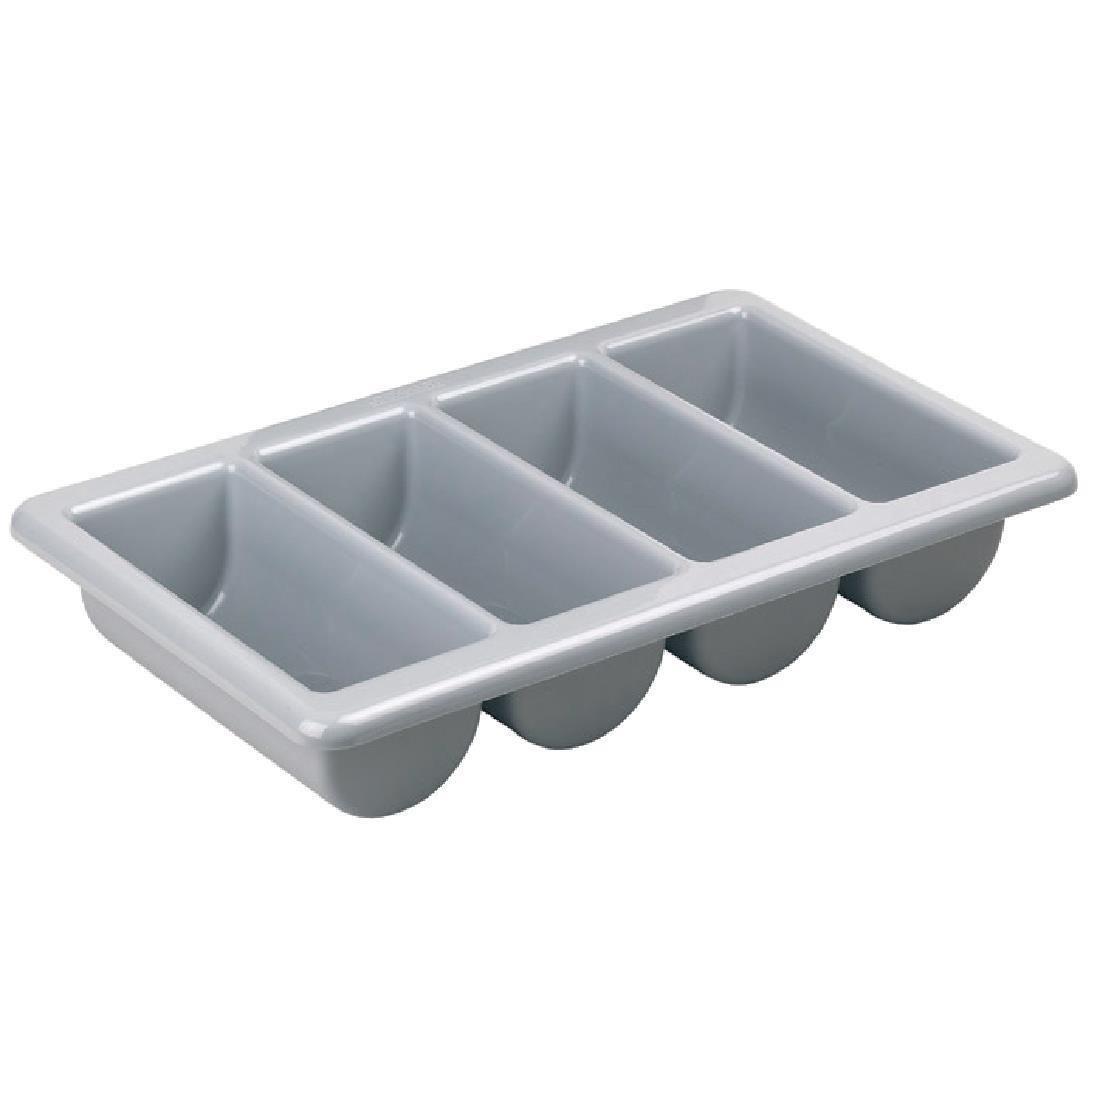 Kristallon Stackable Plastic Cutlery Tray Large - Each - J850